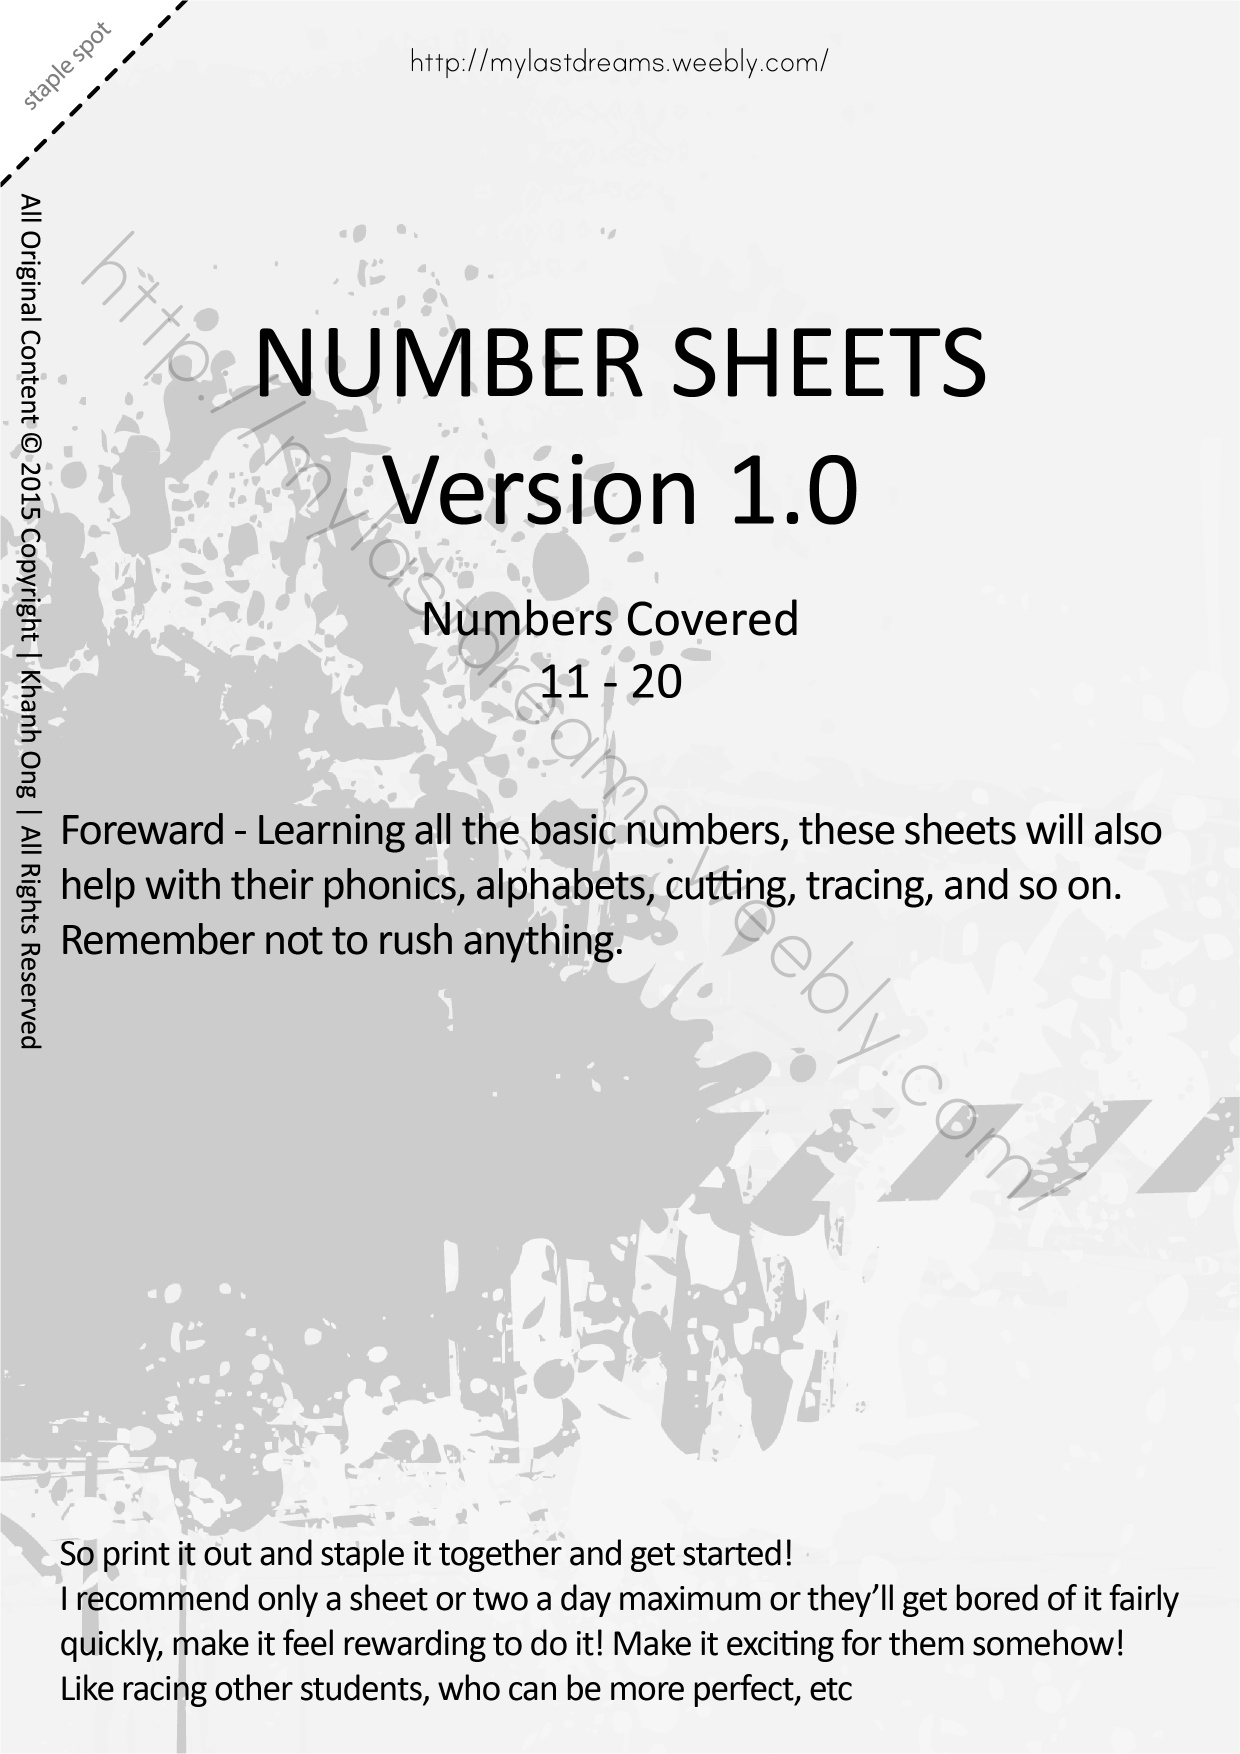 MLD - Basic Numbers Worksheets - Part 2 - A4 Sized